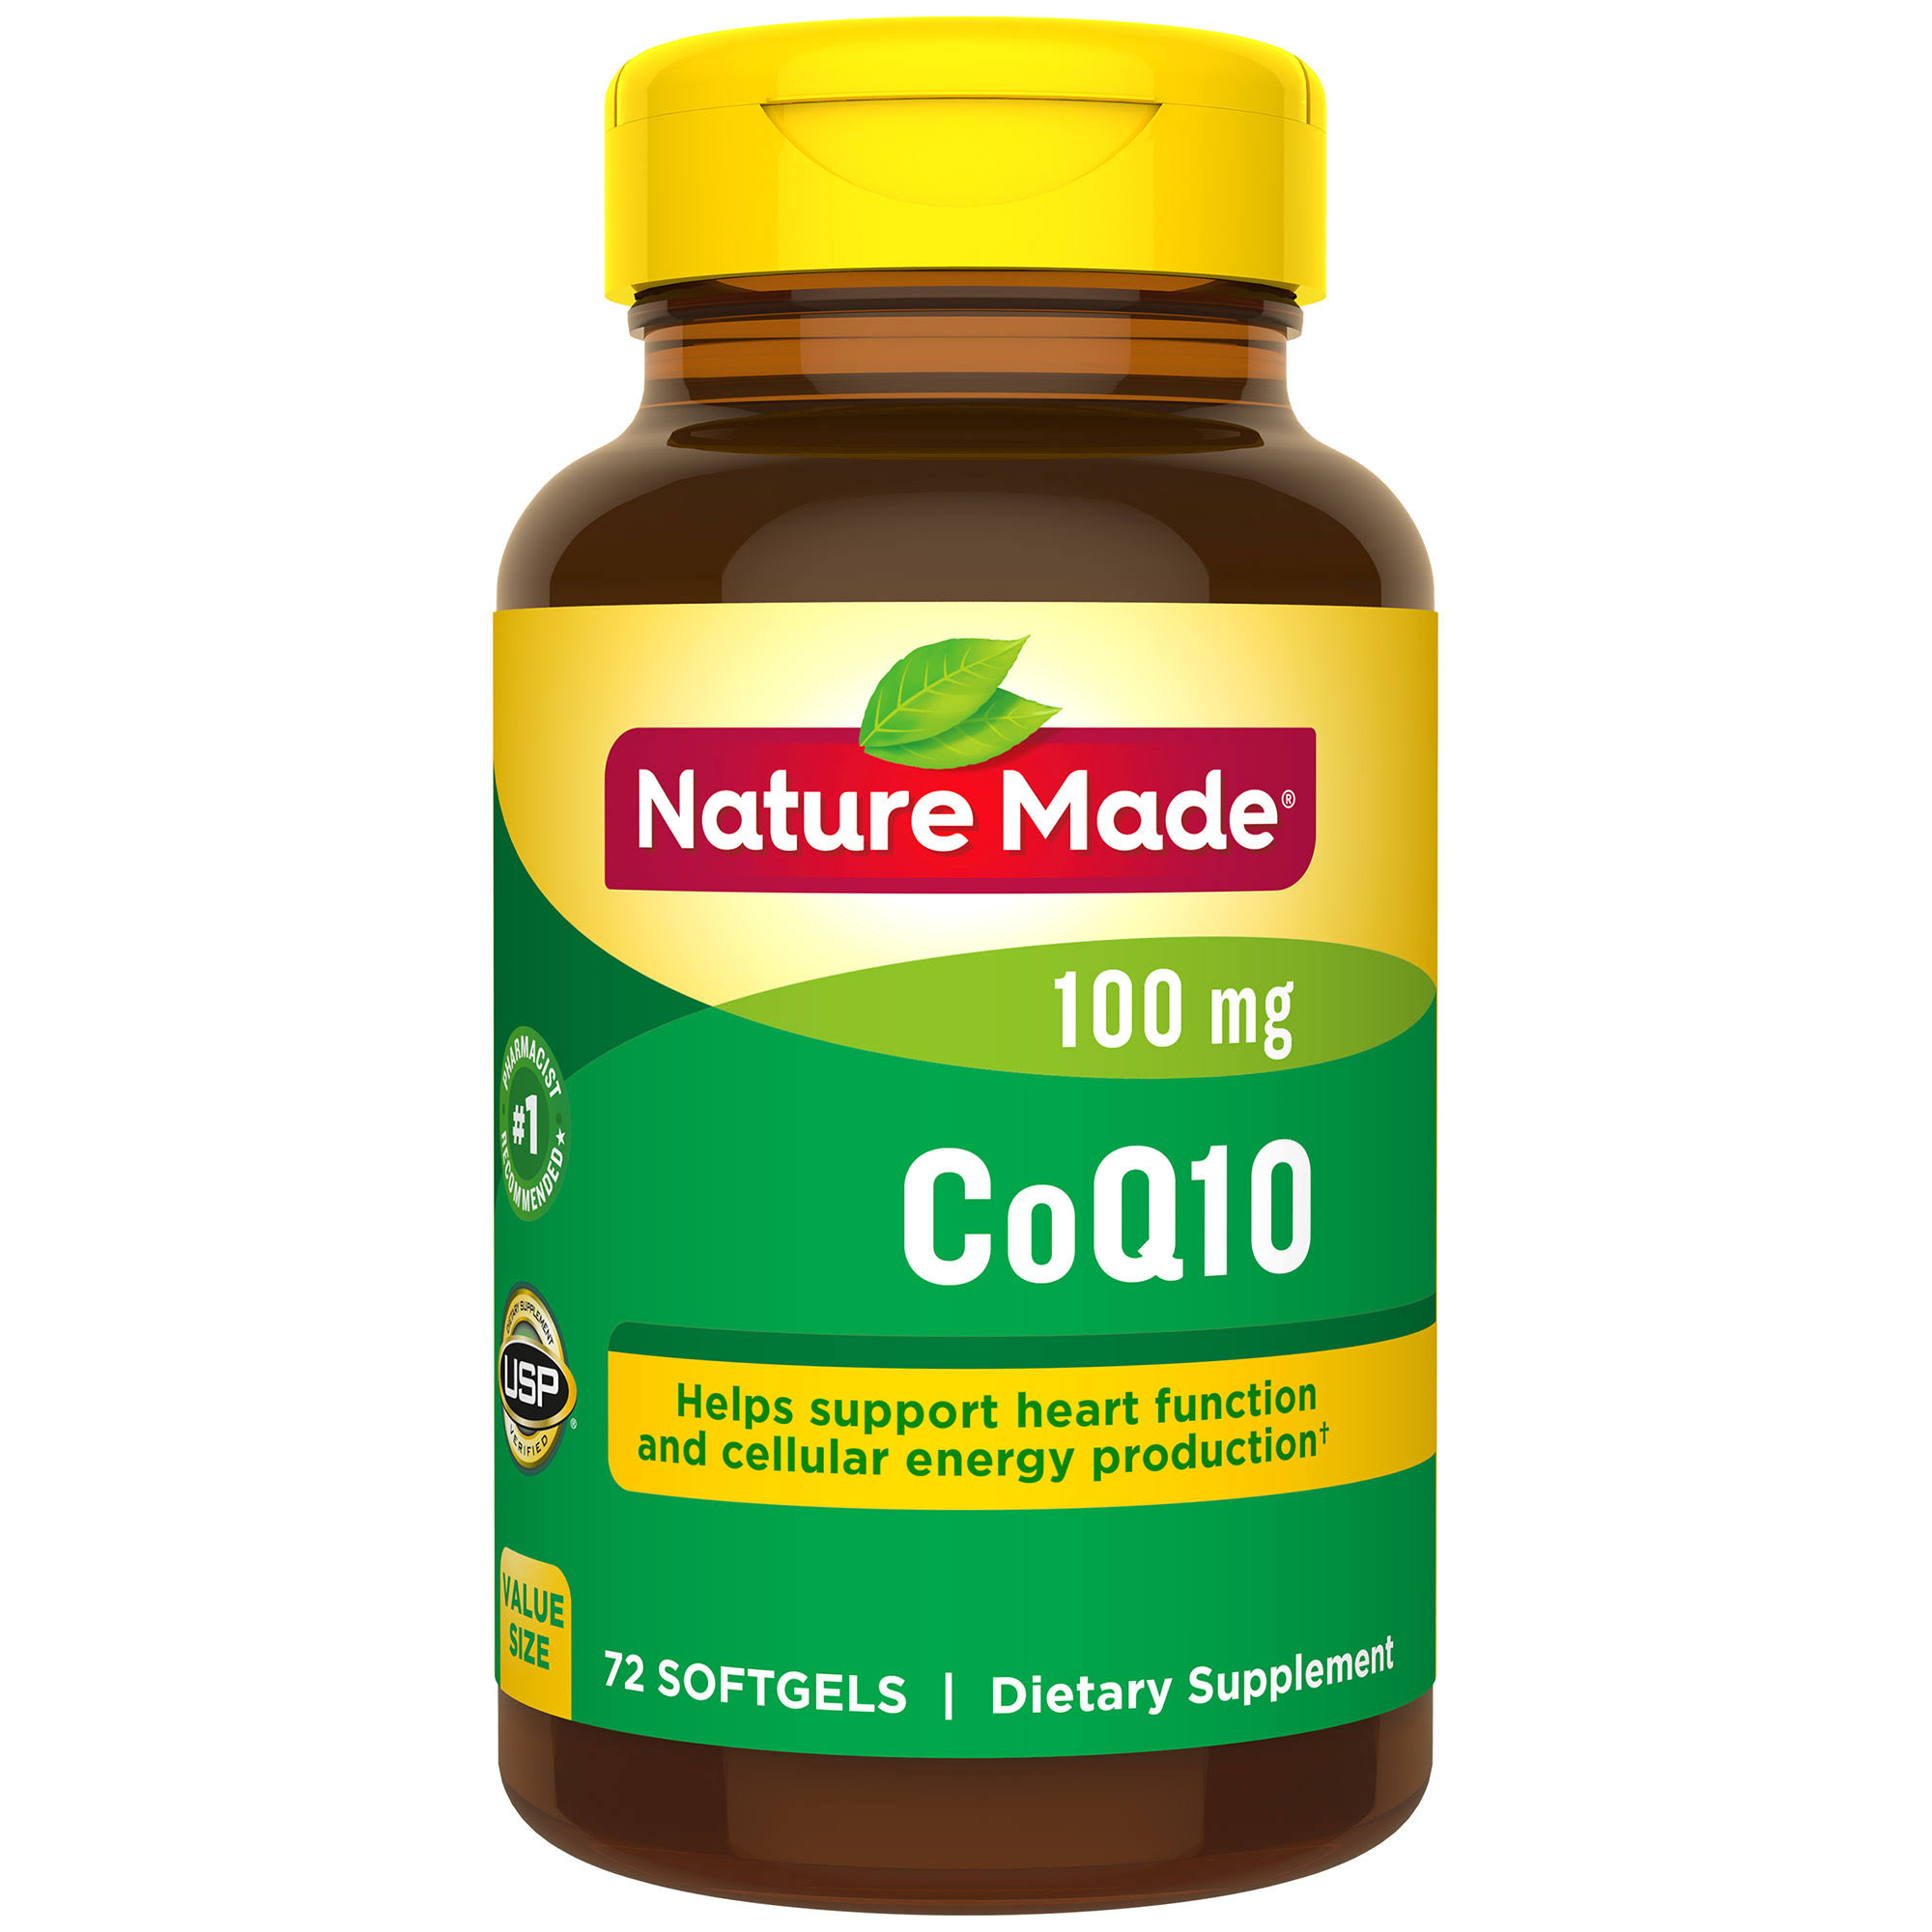 Nature Made Coq10 Dietary Supplement - 100mg, Orange, 72ct